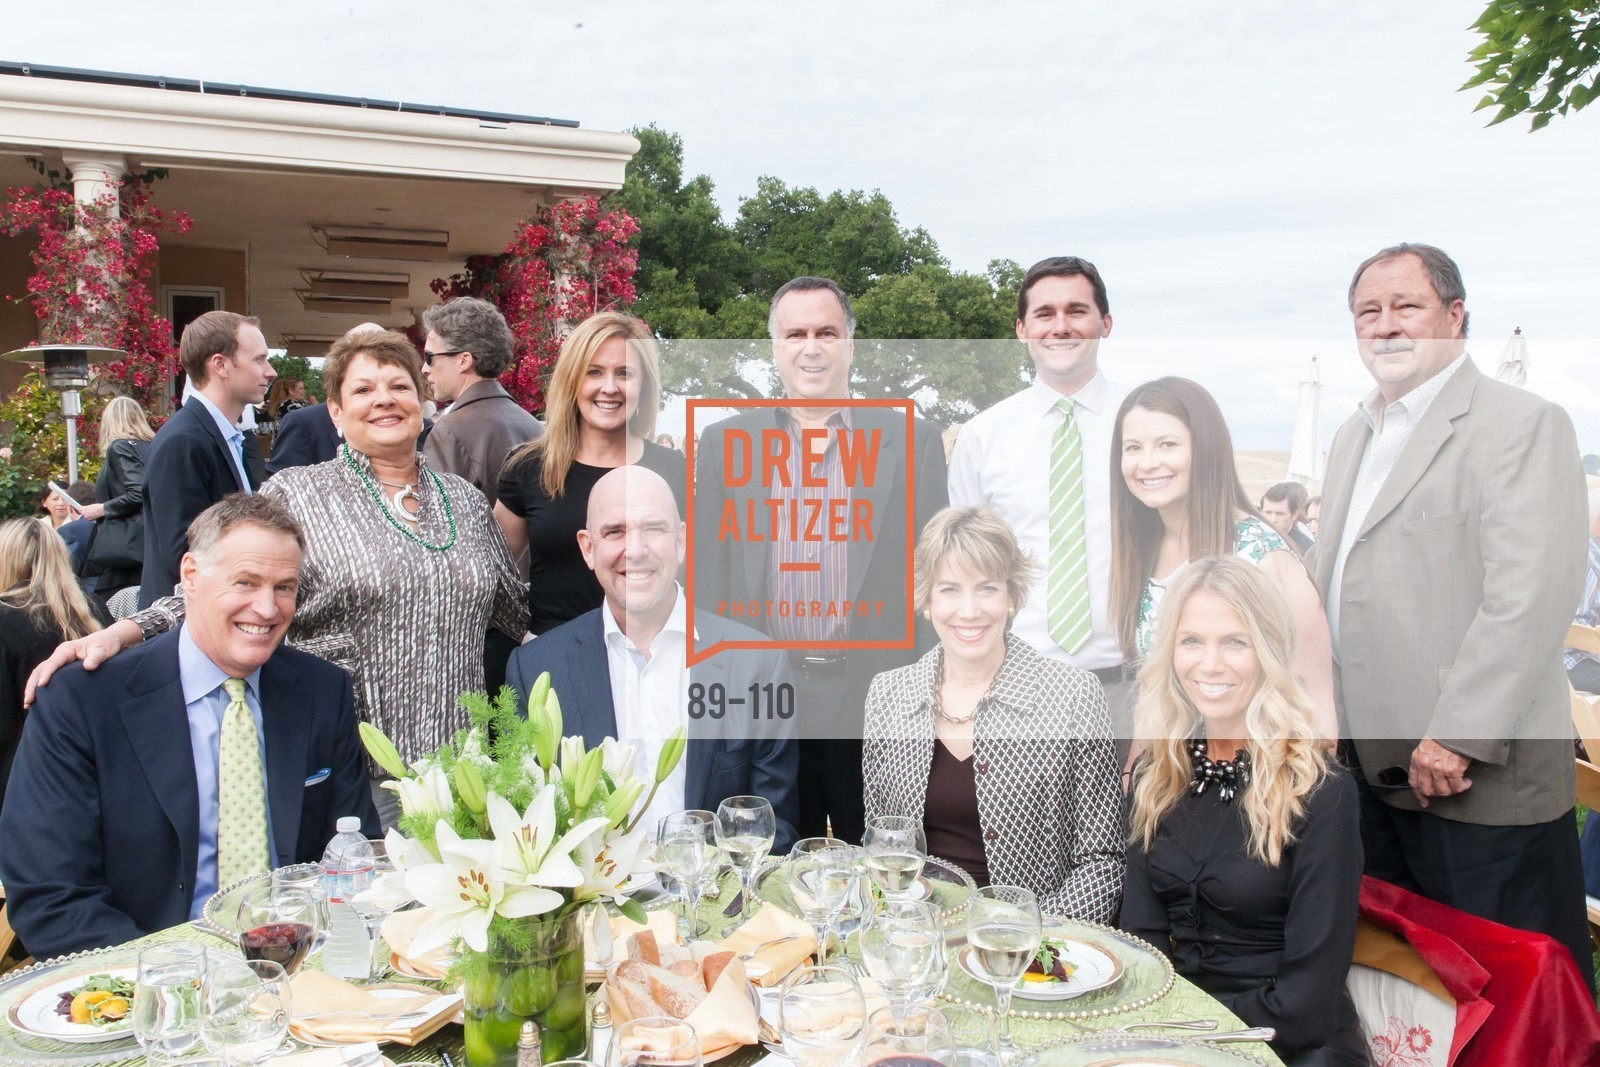 Scott Bedford, Liz Rieke, Nancy Rollett, Jamie Rector, Tom Rollette, Phyllis Bedford, Annie Zheren, Christopher Hoover, LYME AID 2015 Benefiting the Bay Area Lyme Foundation, Private Residence, May 16th, 2015,Drew Altizer, Drew Altizer Photography, full-service agency, private events, San Francisco photographer, photographer california